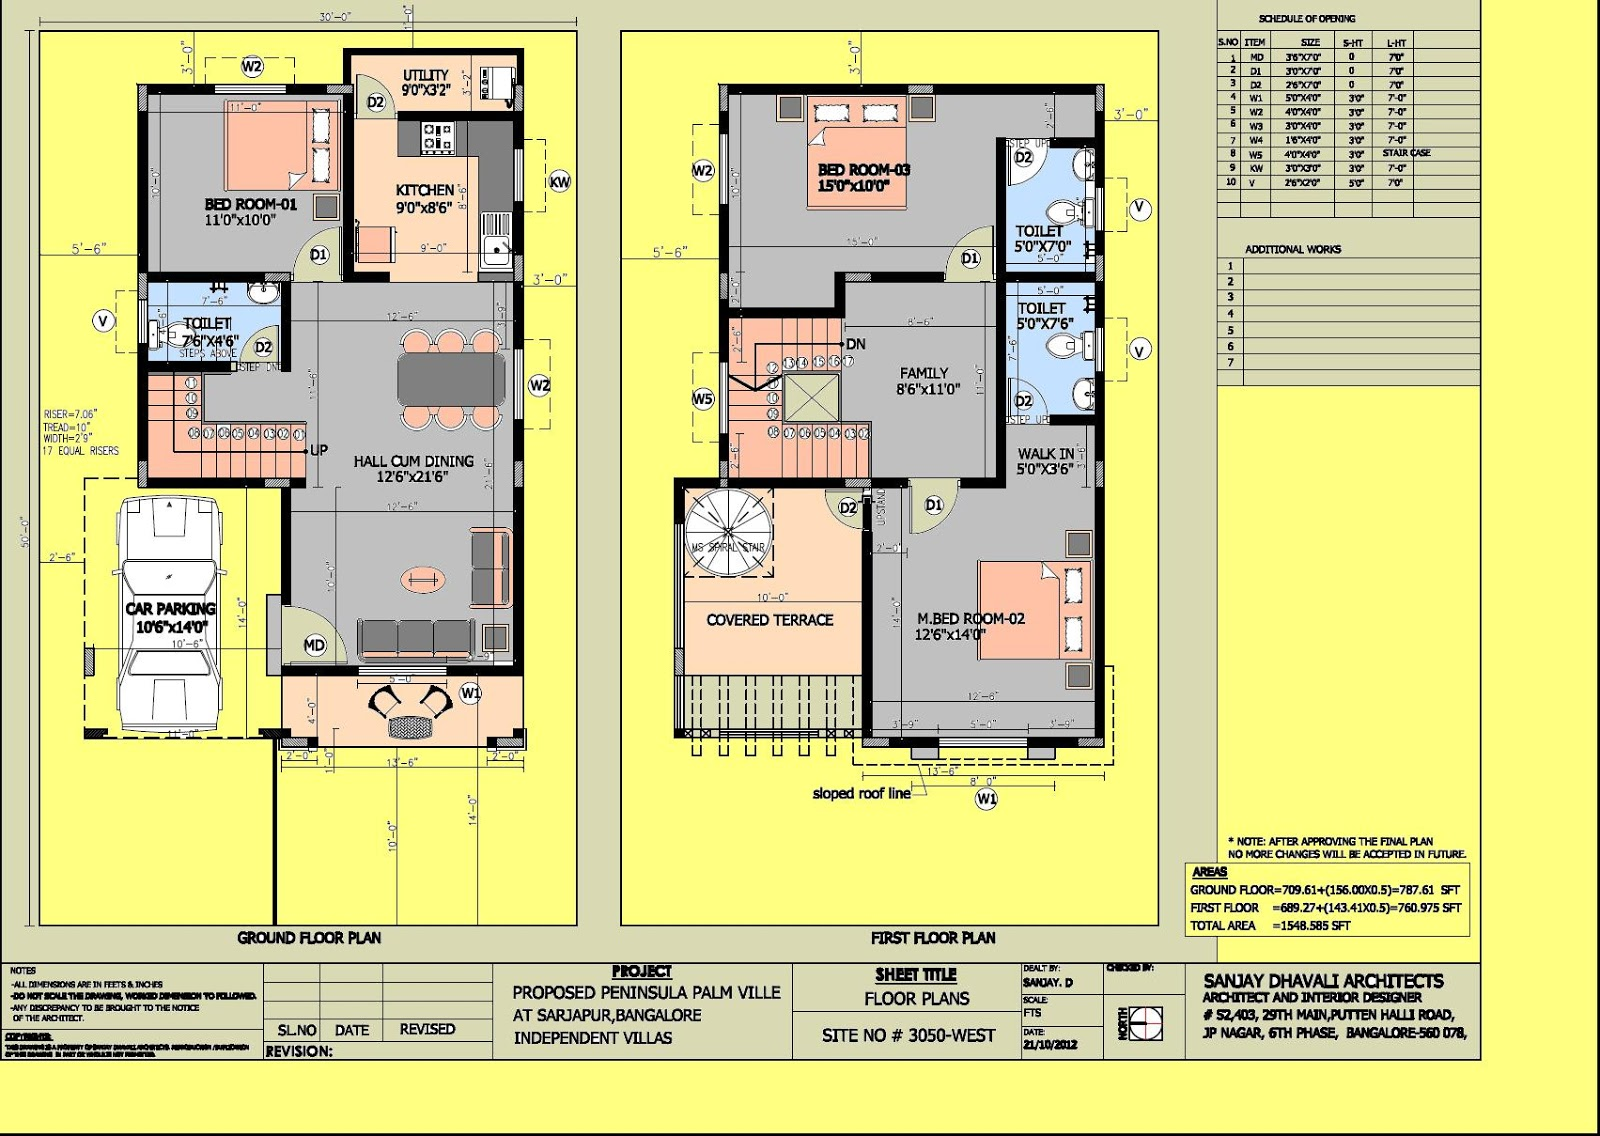 30 40 house plans south facing in bangalore for House plans for 30x40 site